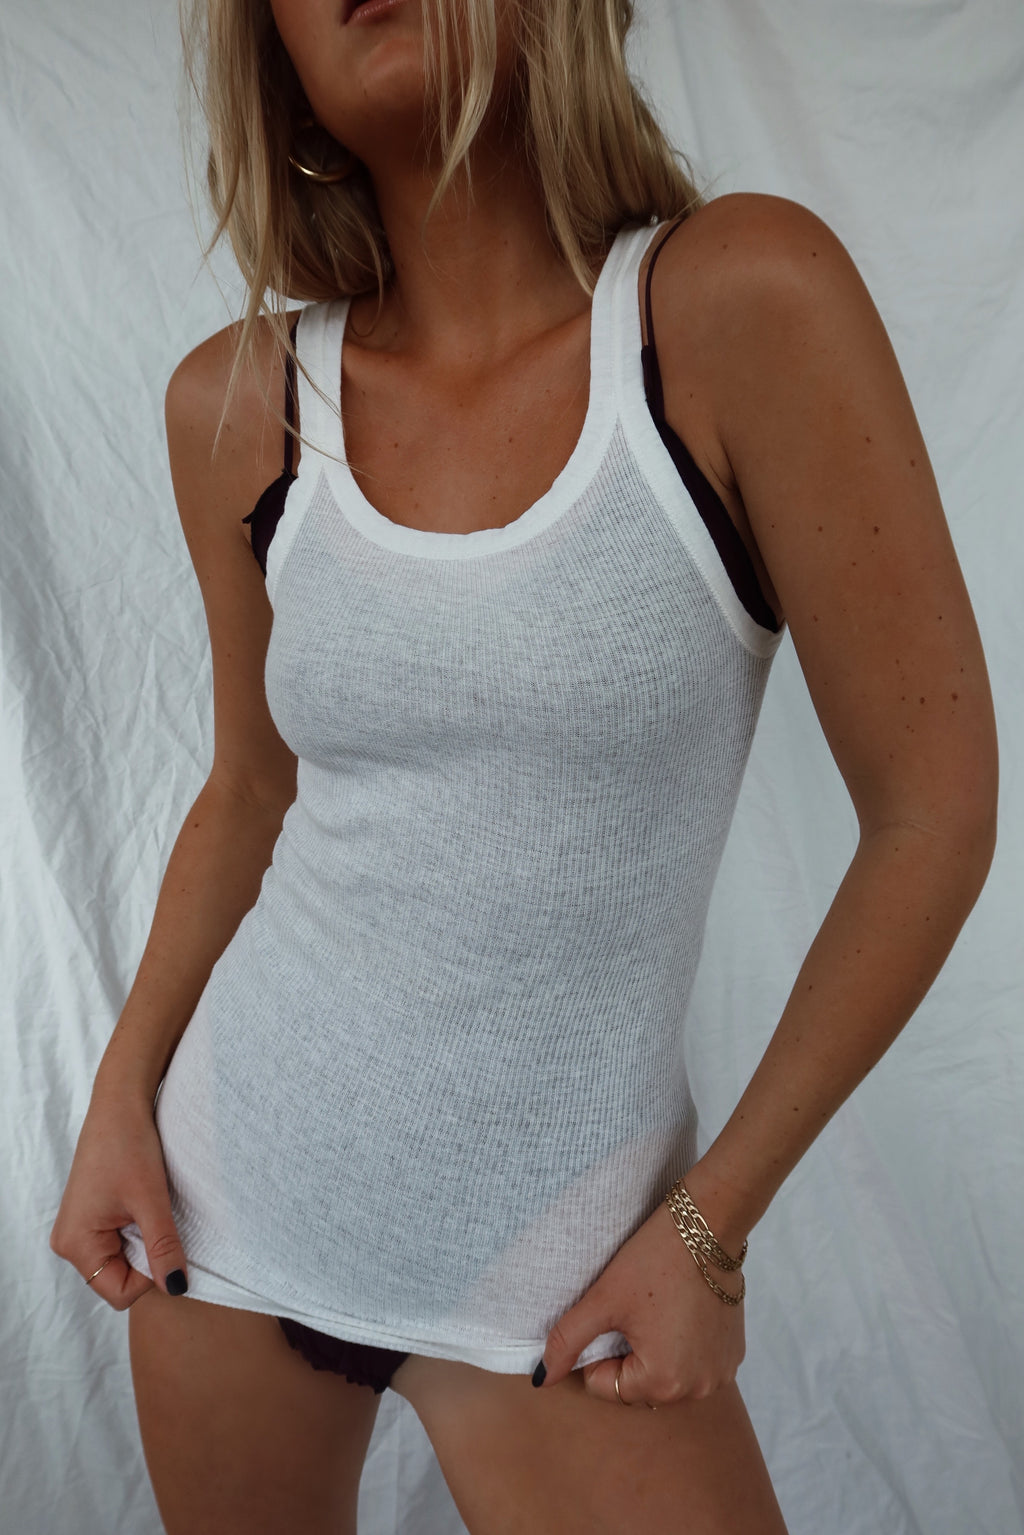 50's cotton night tank (S)